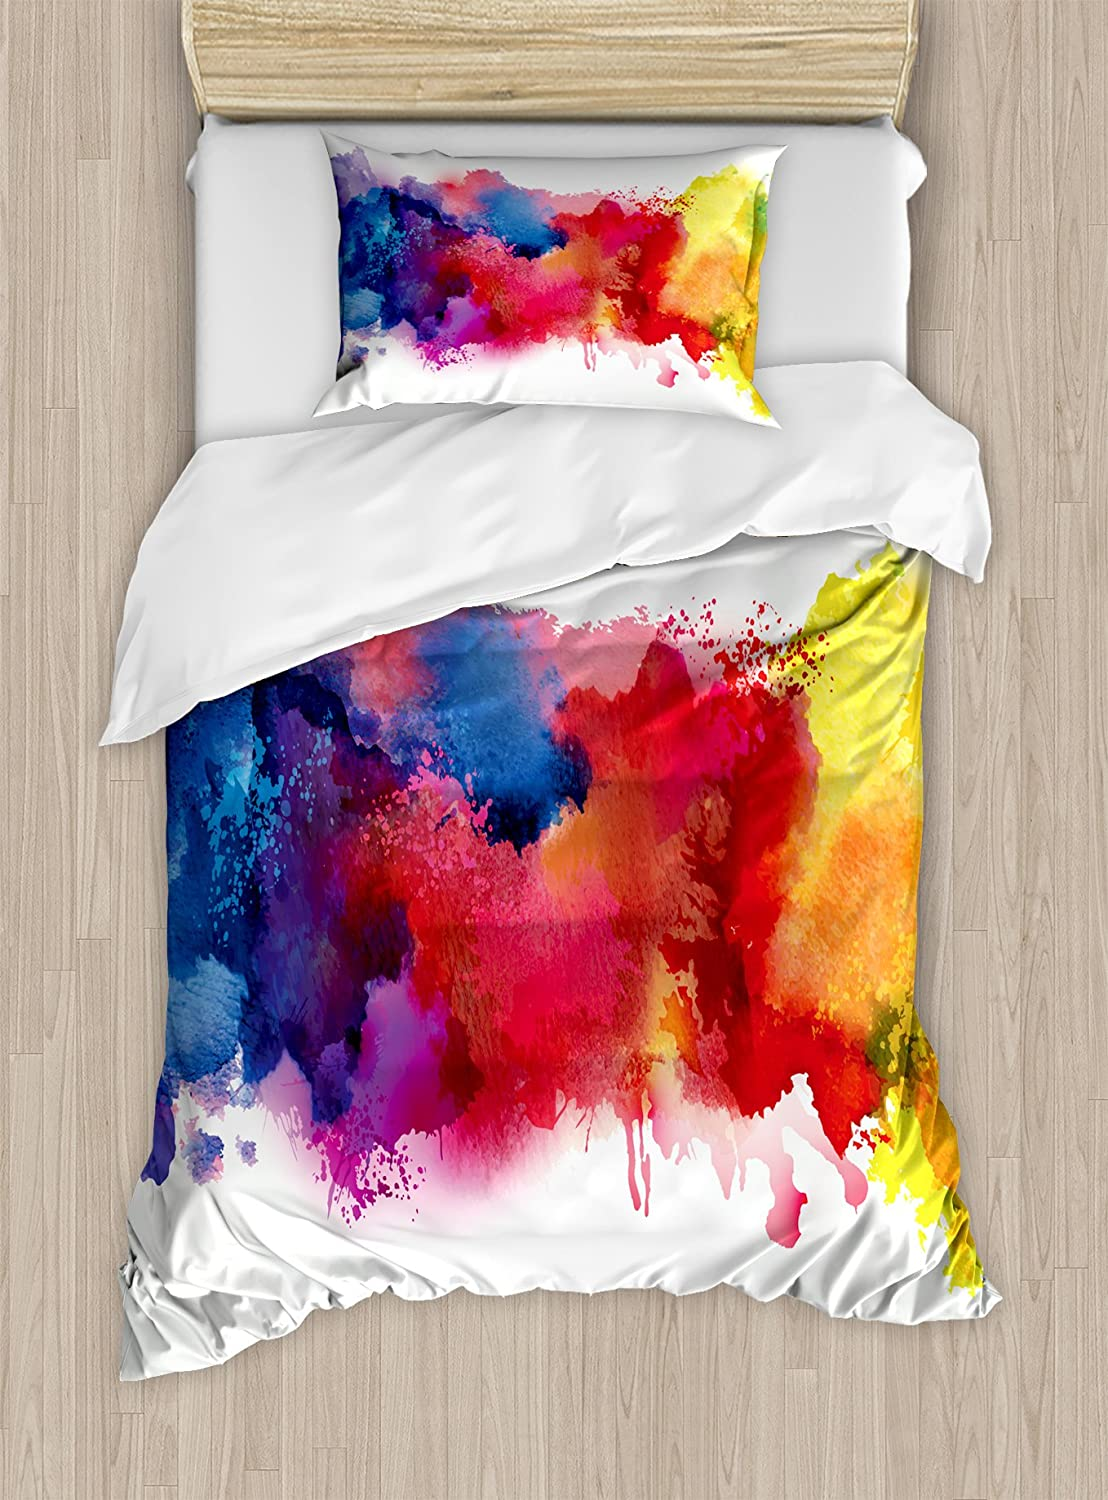 Ambesonne Abstract Duvet Cover Set Twin Size, Vibrant Stains of Watercolor Paint Splatters Brushstrokes Dripping Liquid Art, Decorative 2 Piece Bedding Set with 1 Pillow Sham, Red Yellow Blue